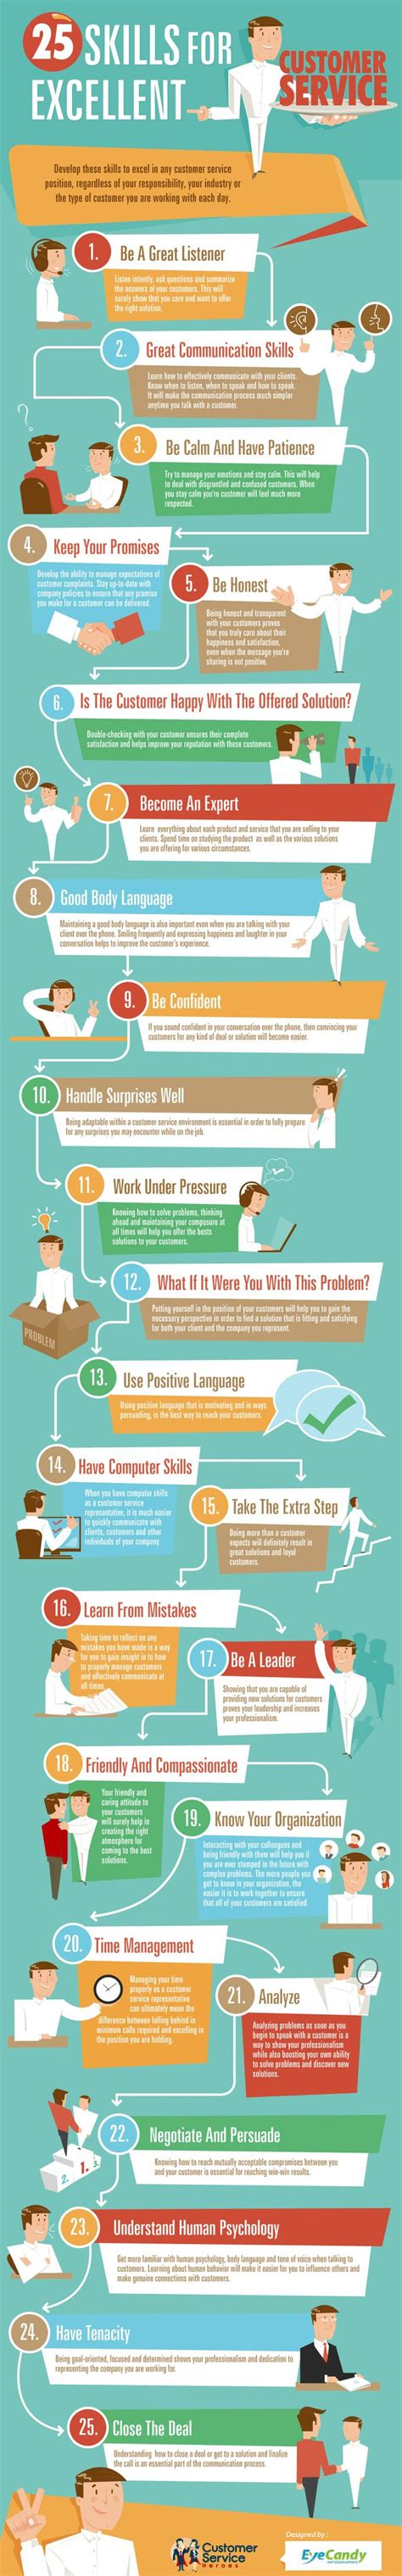 infographic 25 skills for excellent customer service mycustomer